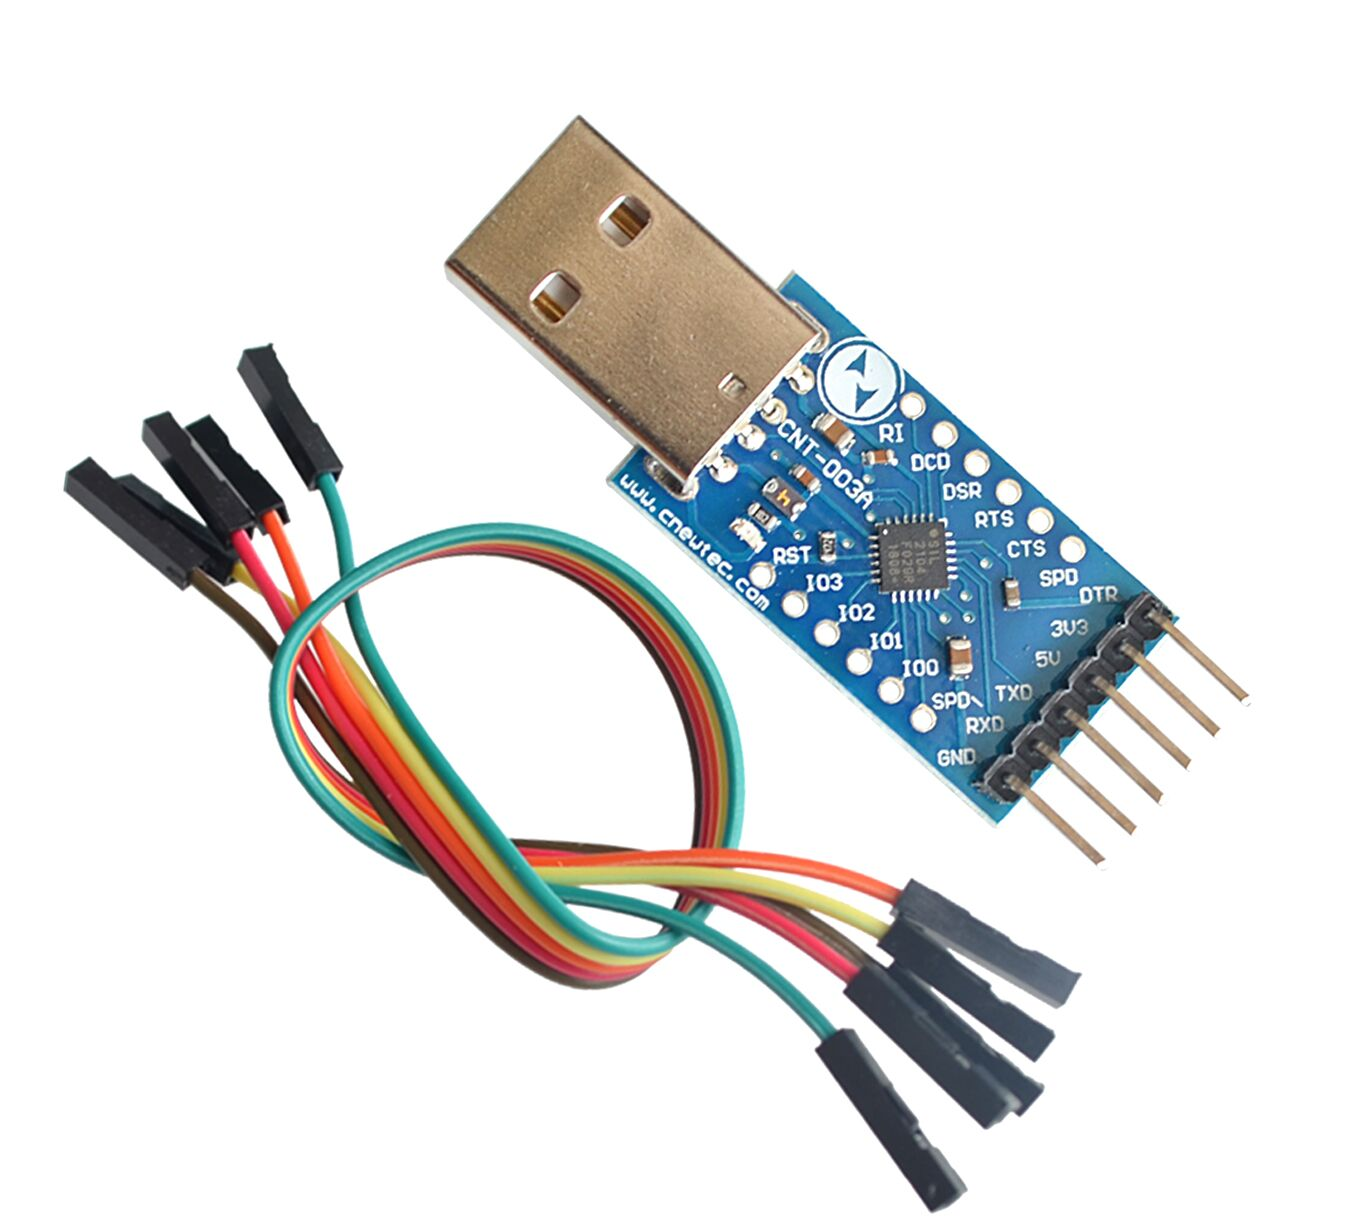 USB 2.0 to TTL UART 6PIN Module Serial Converter CP2104 STC PRGMR Replace CP2102 With Dupont CablesUSB 2.0 to TTL UART 6PIN Module Serial Converter CP2104 STC PRGMR Replace CP2102 With Dupont Cables